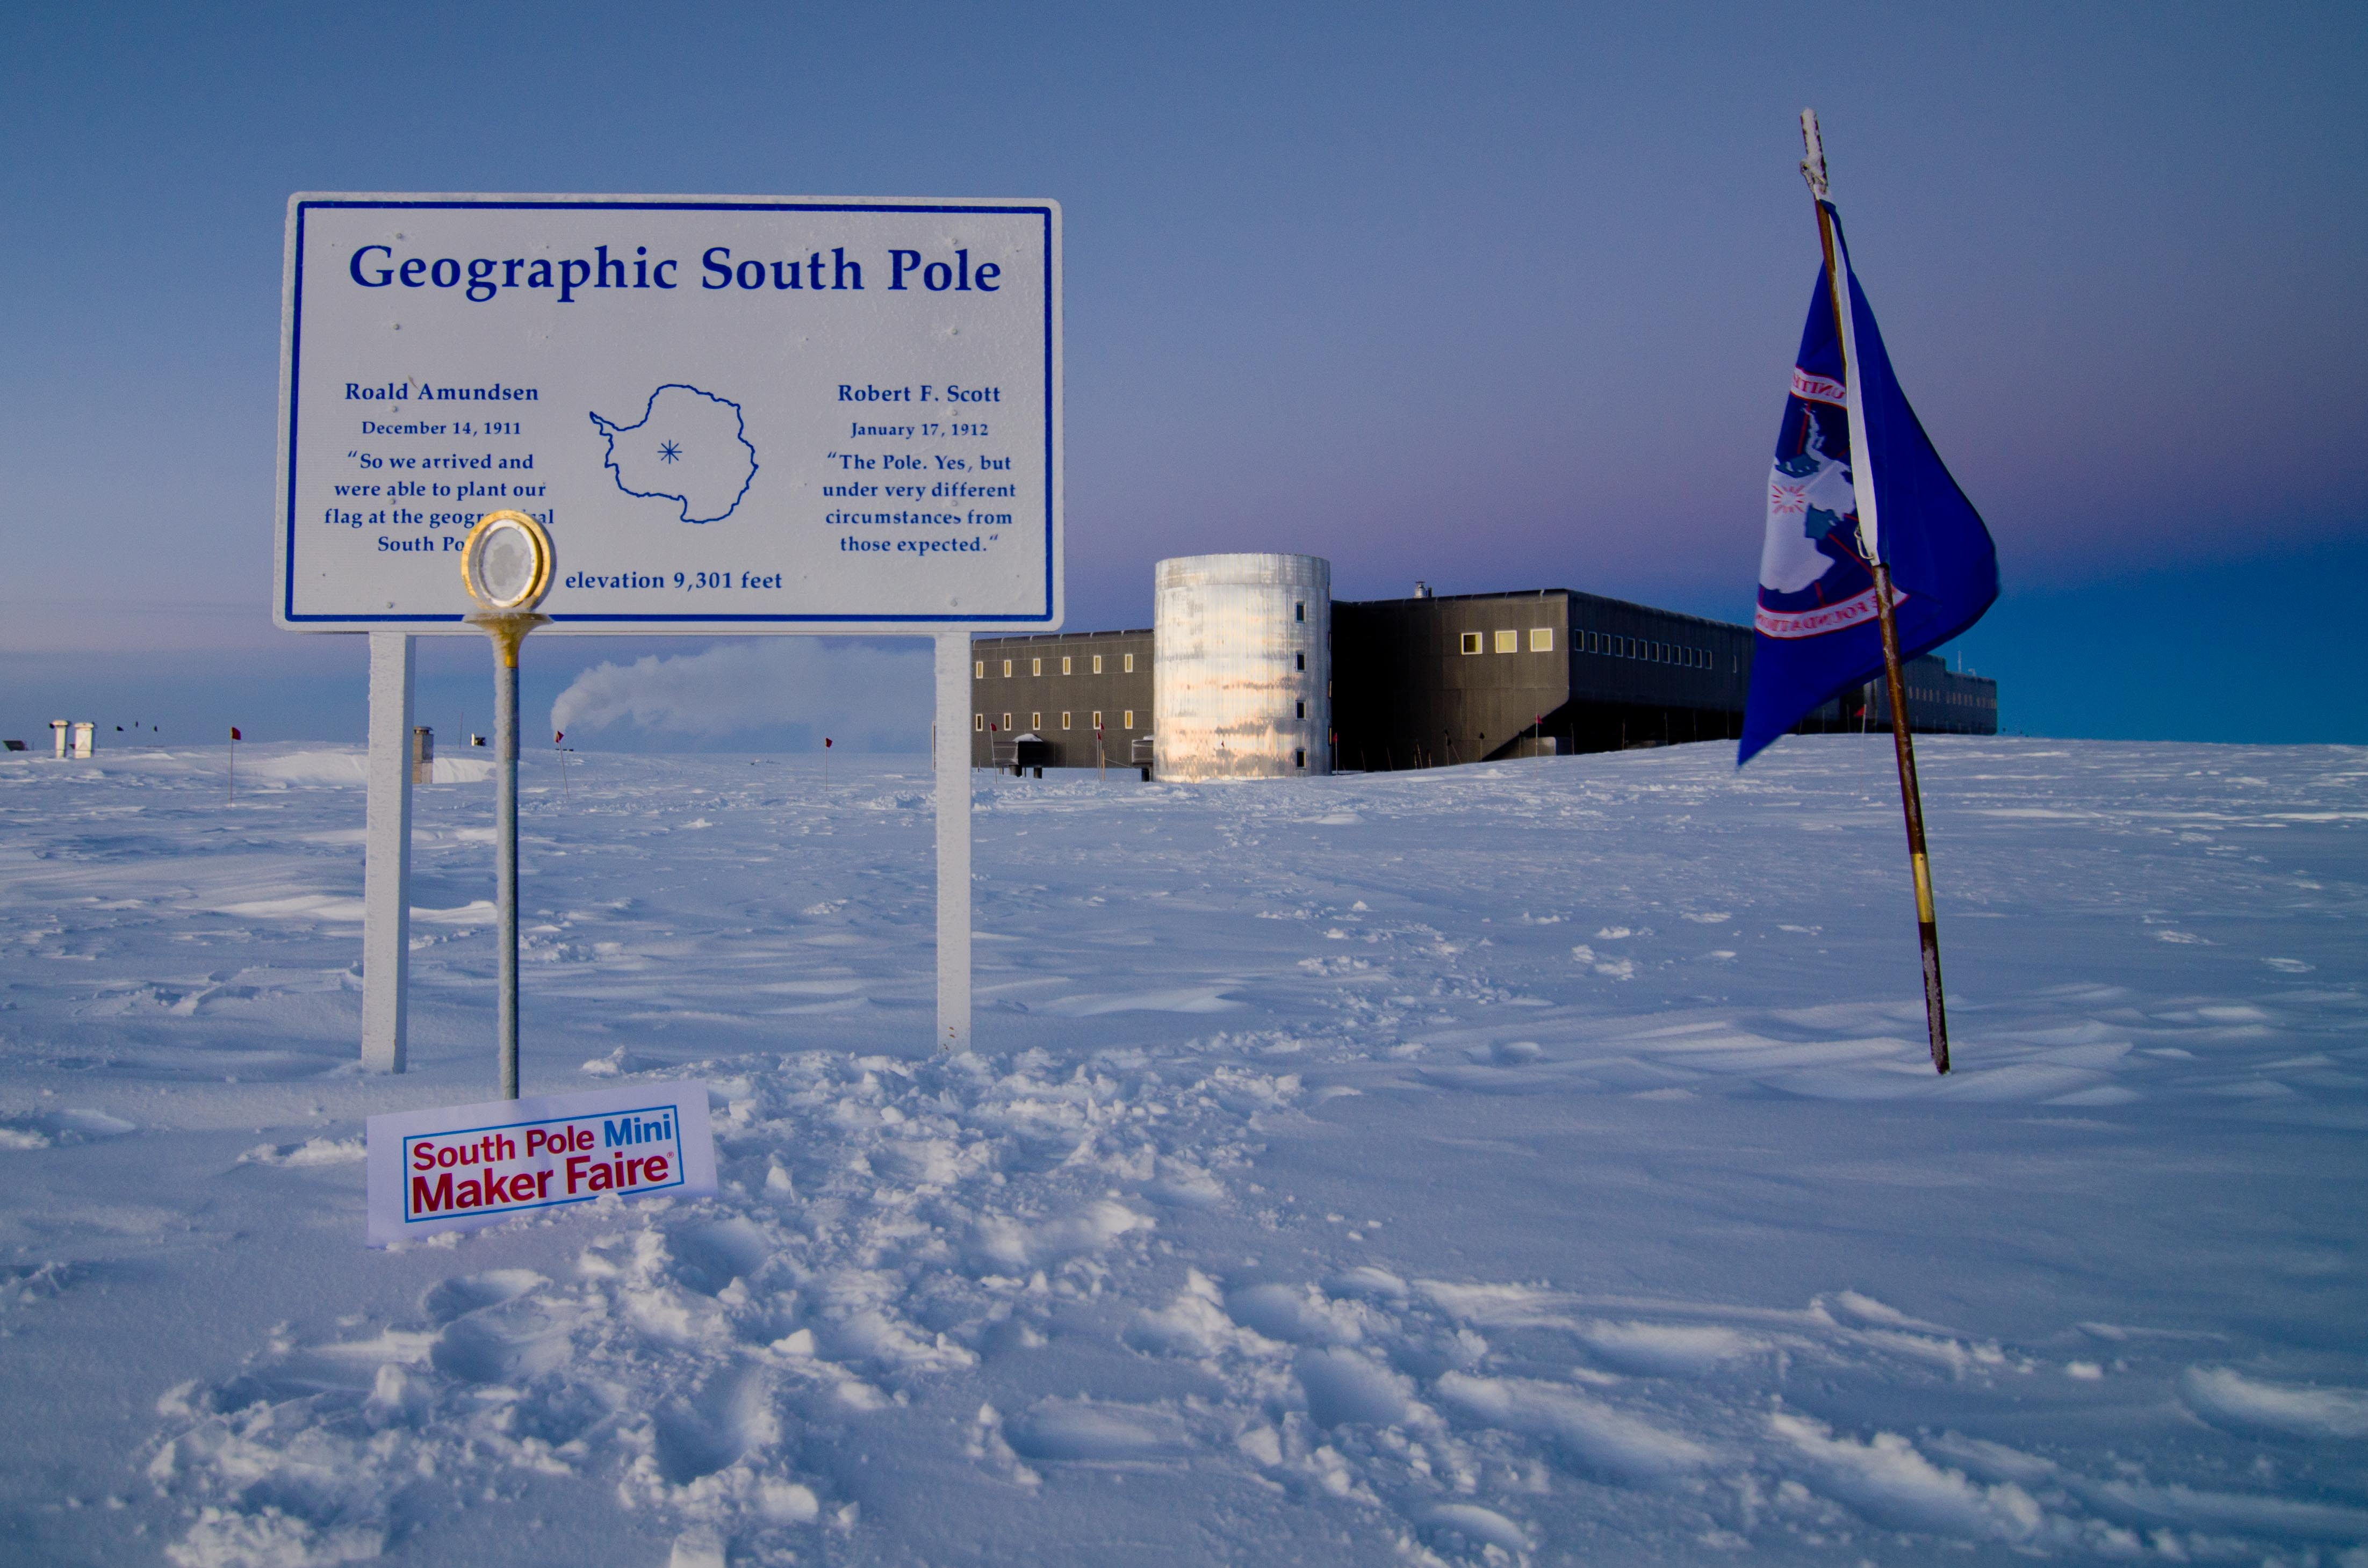 The First South Pole Mini Maker Faire